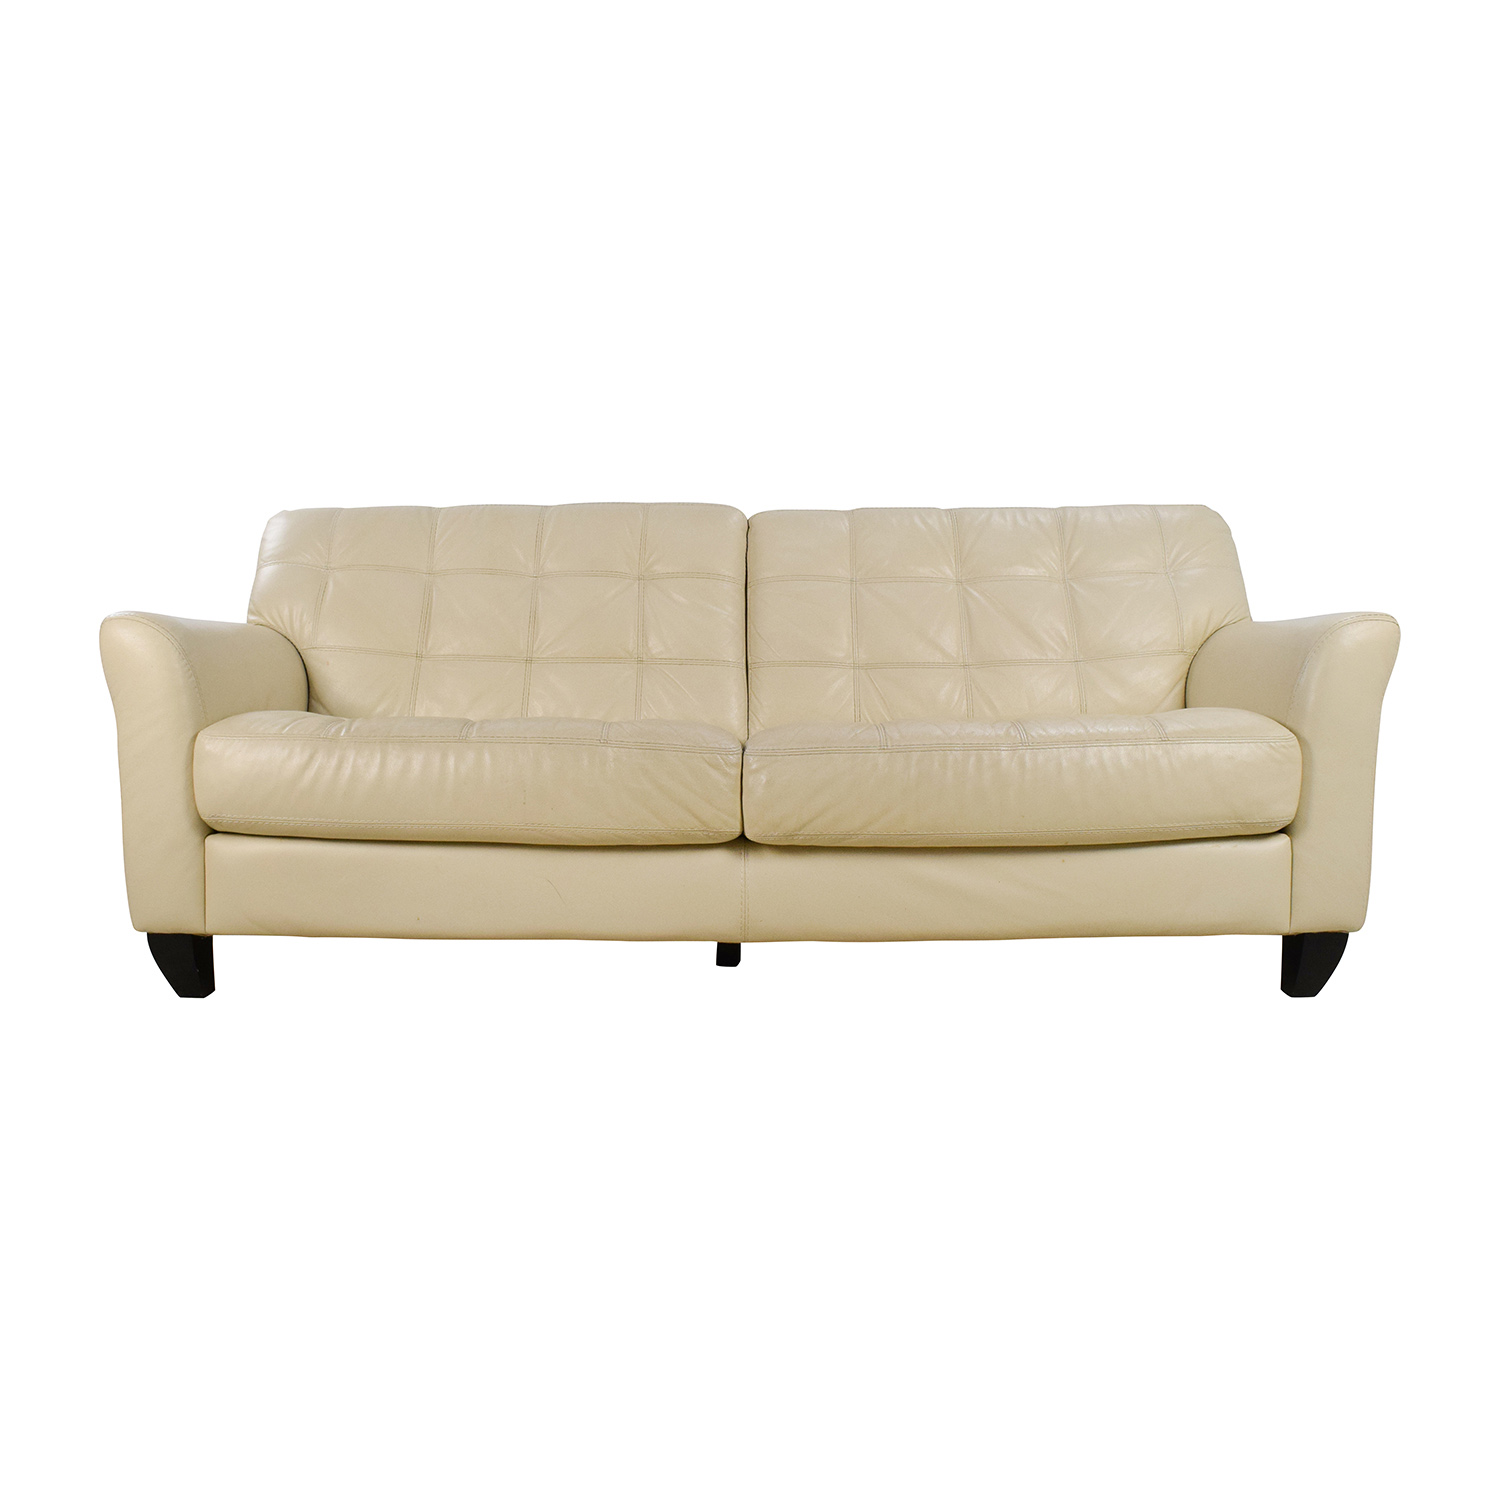 macy furniture sofa leather sectional sale vancouver sofas at macys braylei track arm with 3 toss pillows